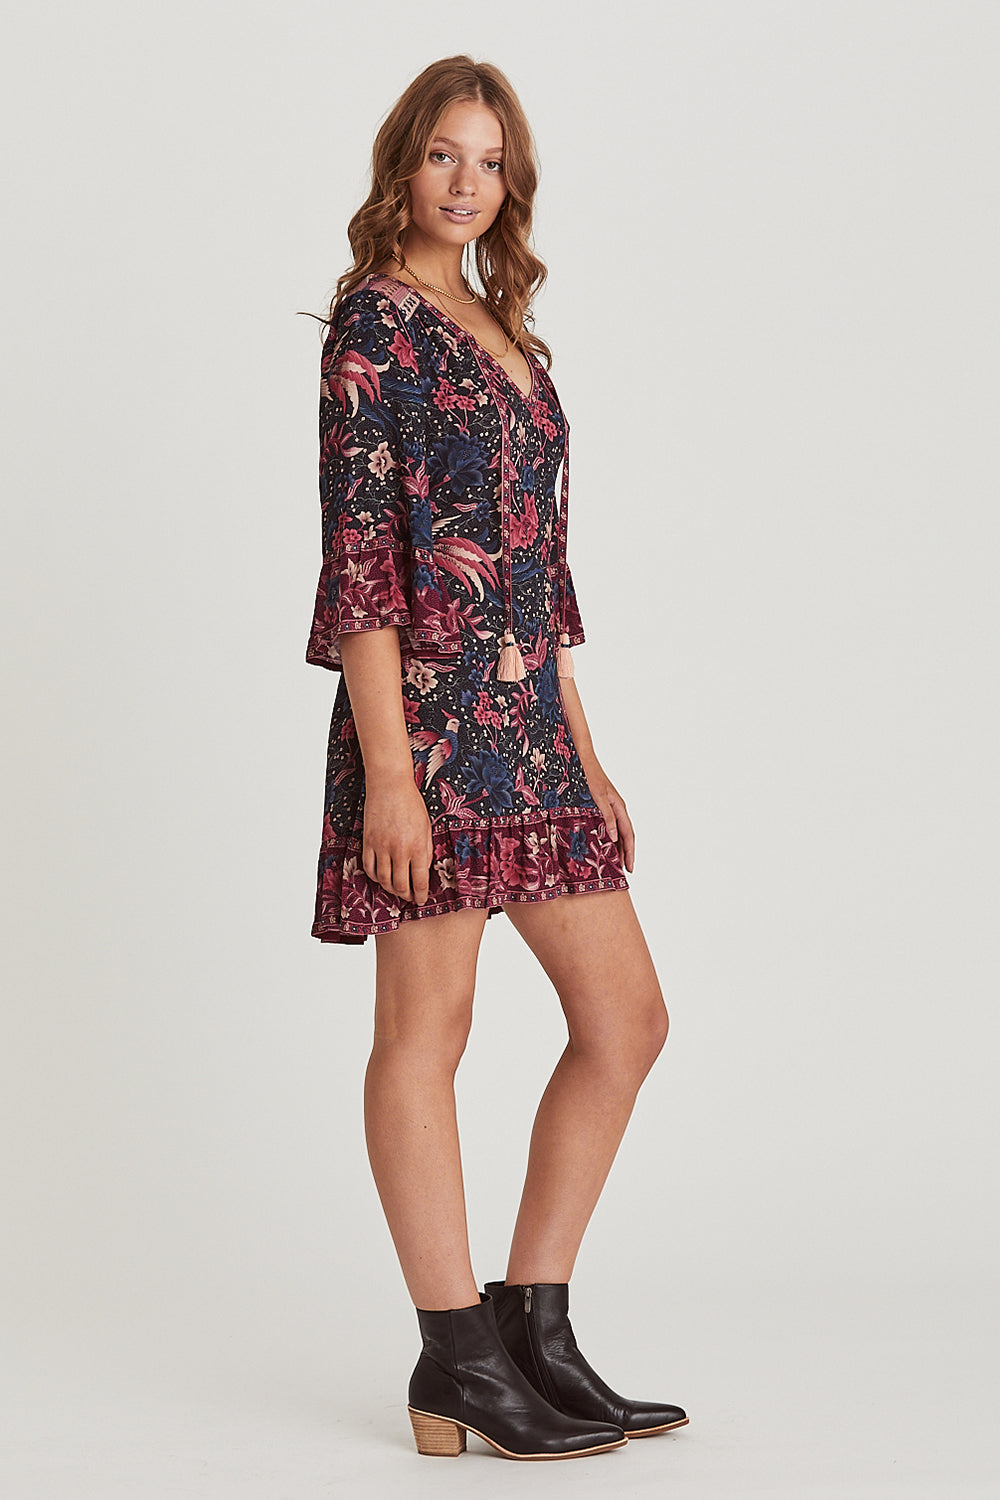 Ilona Mini Dress in Twilight